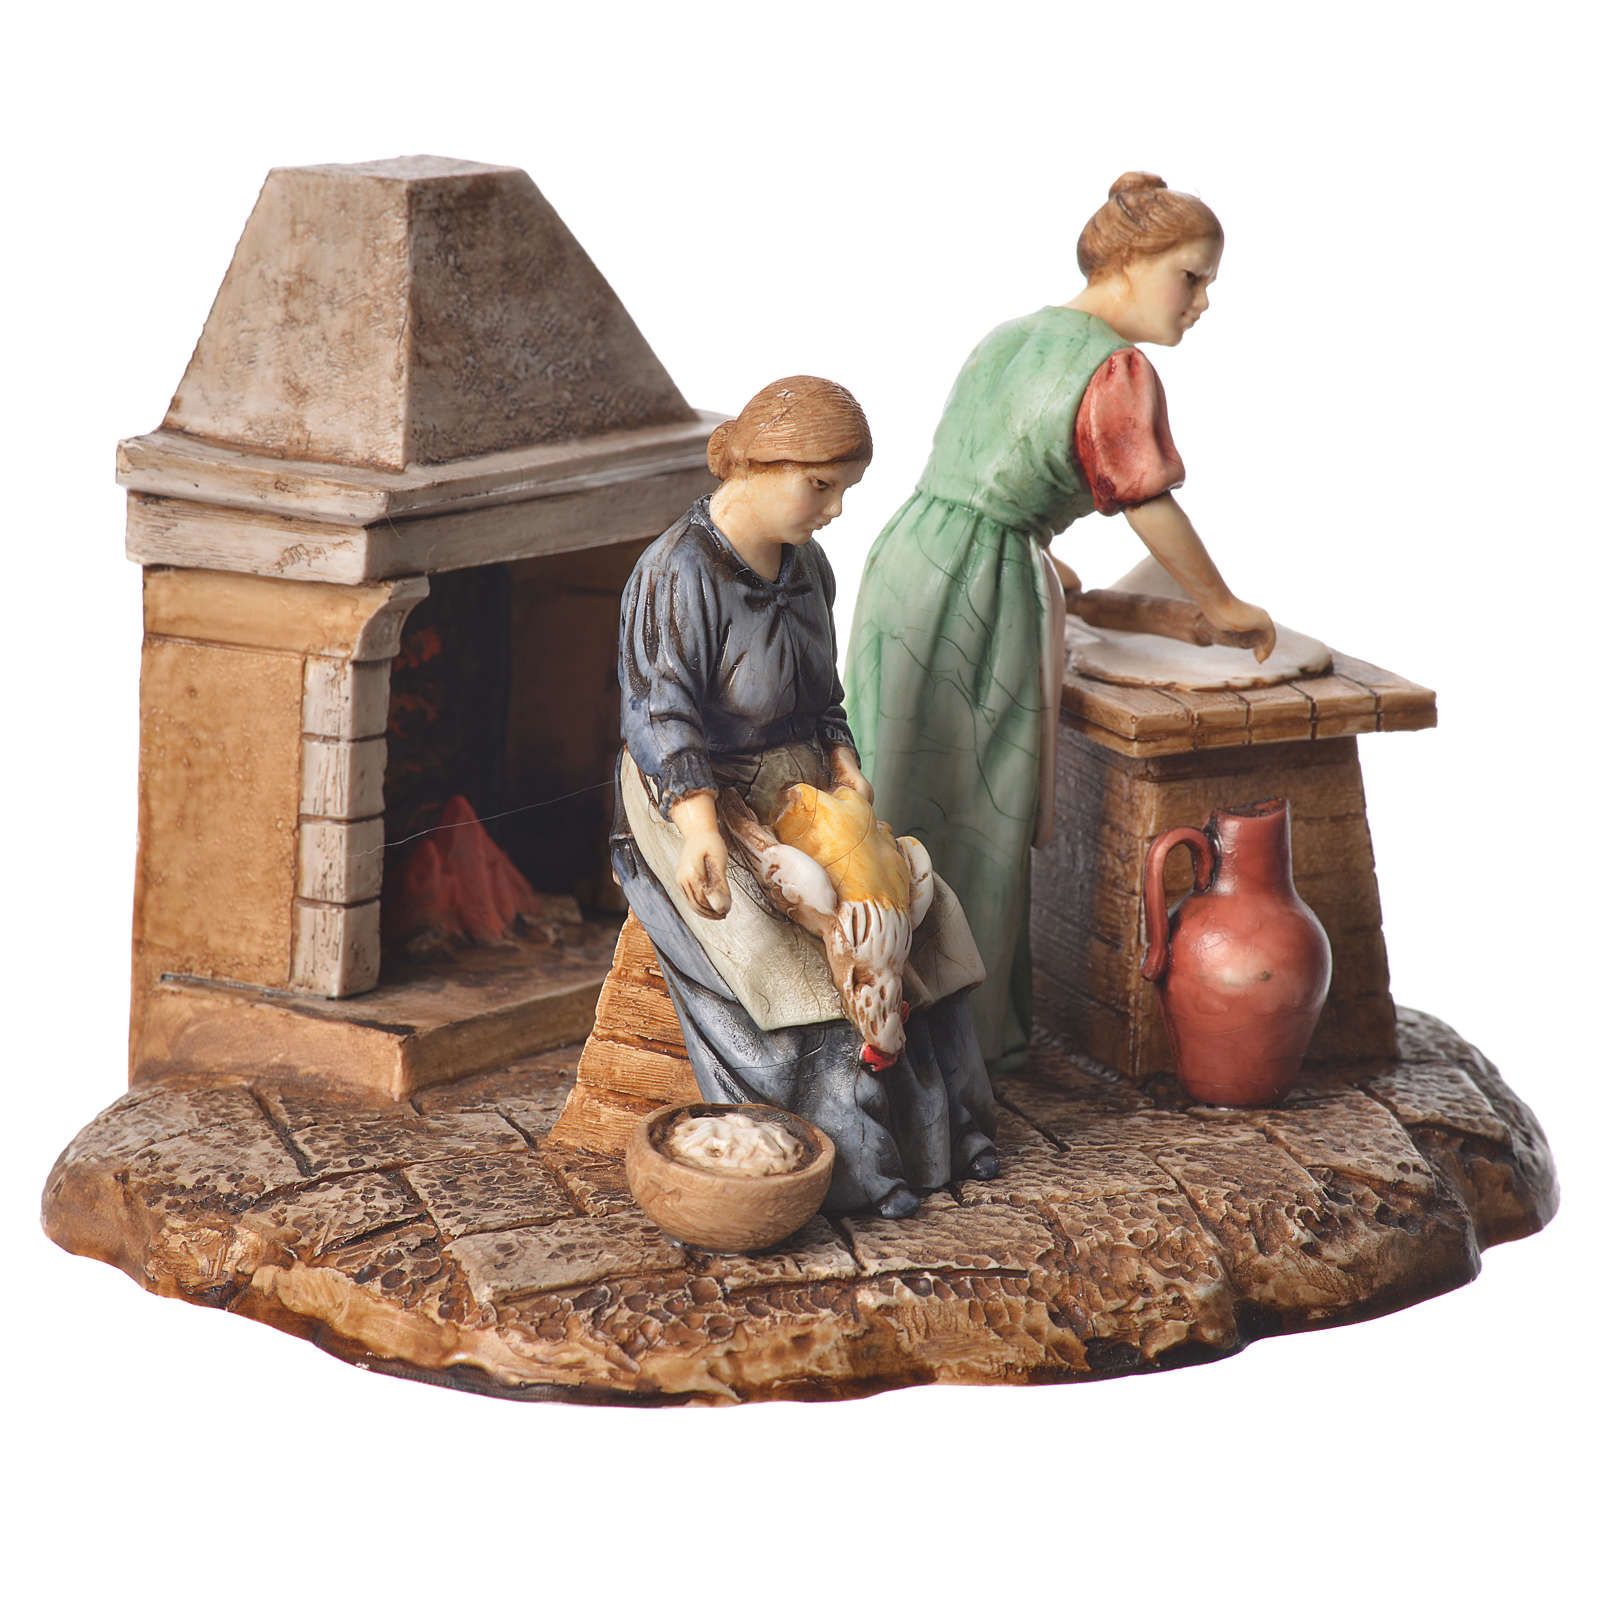 Kitchen nativity figurines 10cm Moranduzzo 4